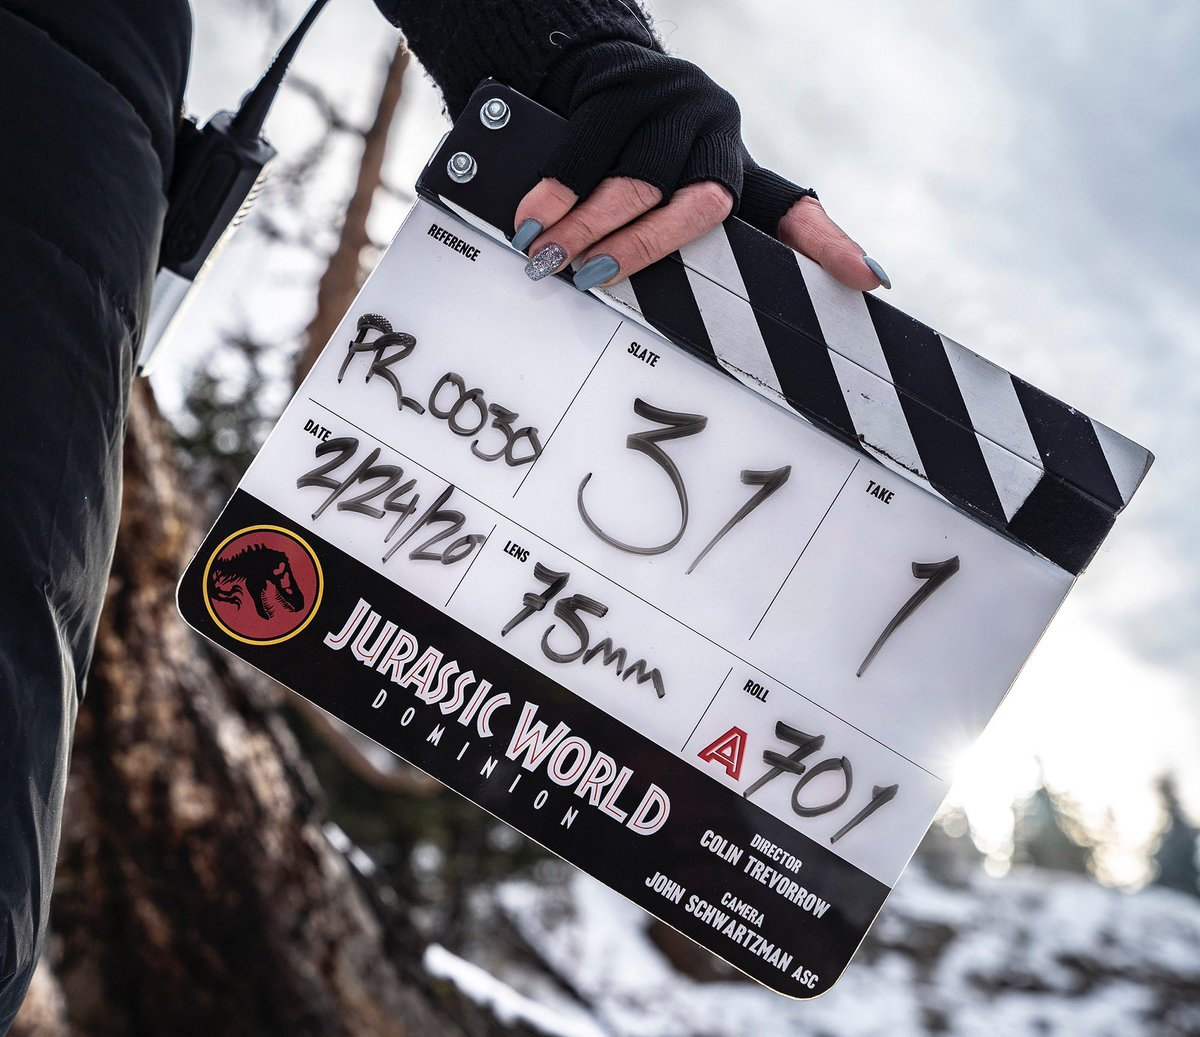 #JurassicWorldDominion has officially started filming  Here's everything we know about the film so far http://fandom.link/Dominionpic.twitter.com/taBKF6NiEc